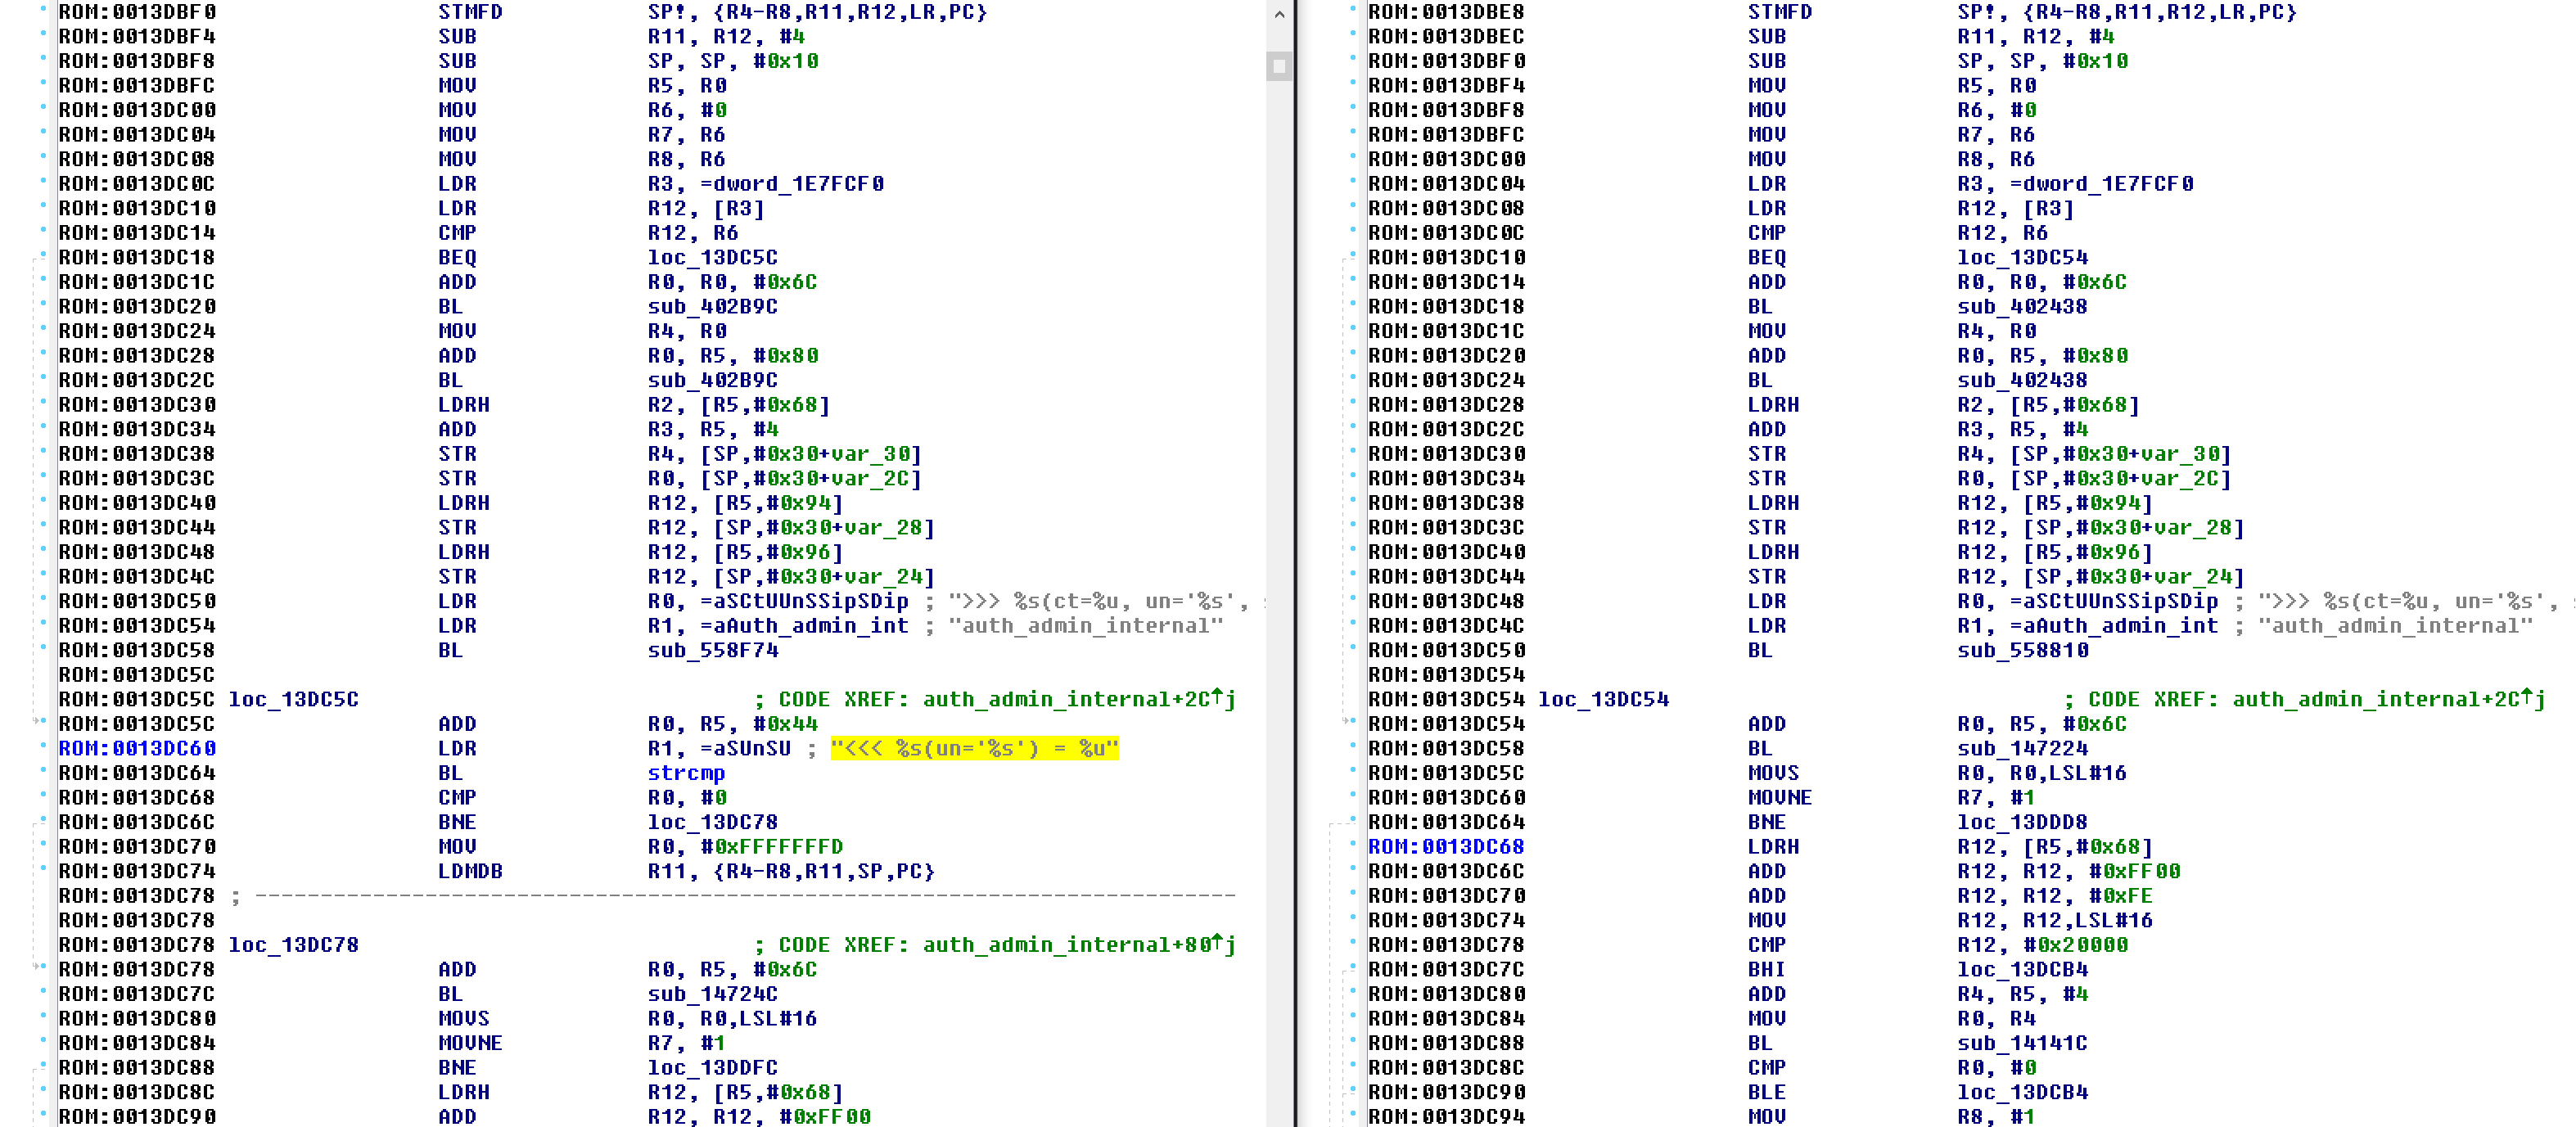 A side-by-side look at the Juniper ScreenOS code, with the backdoored code on the left and unaltered code on the right. The backdoor password is highlighted.